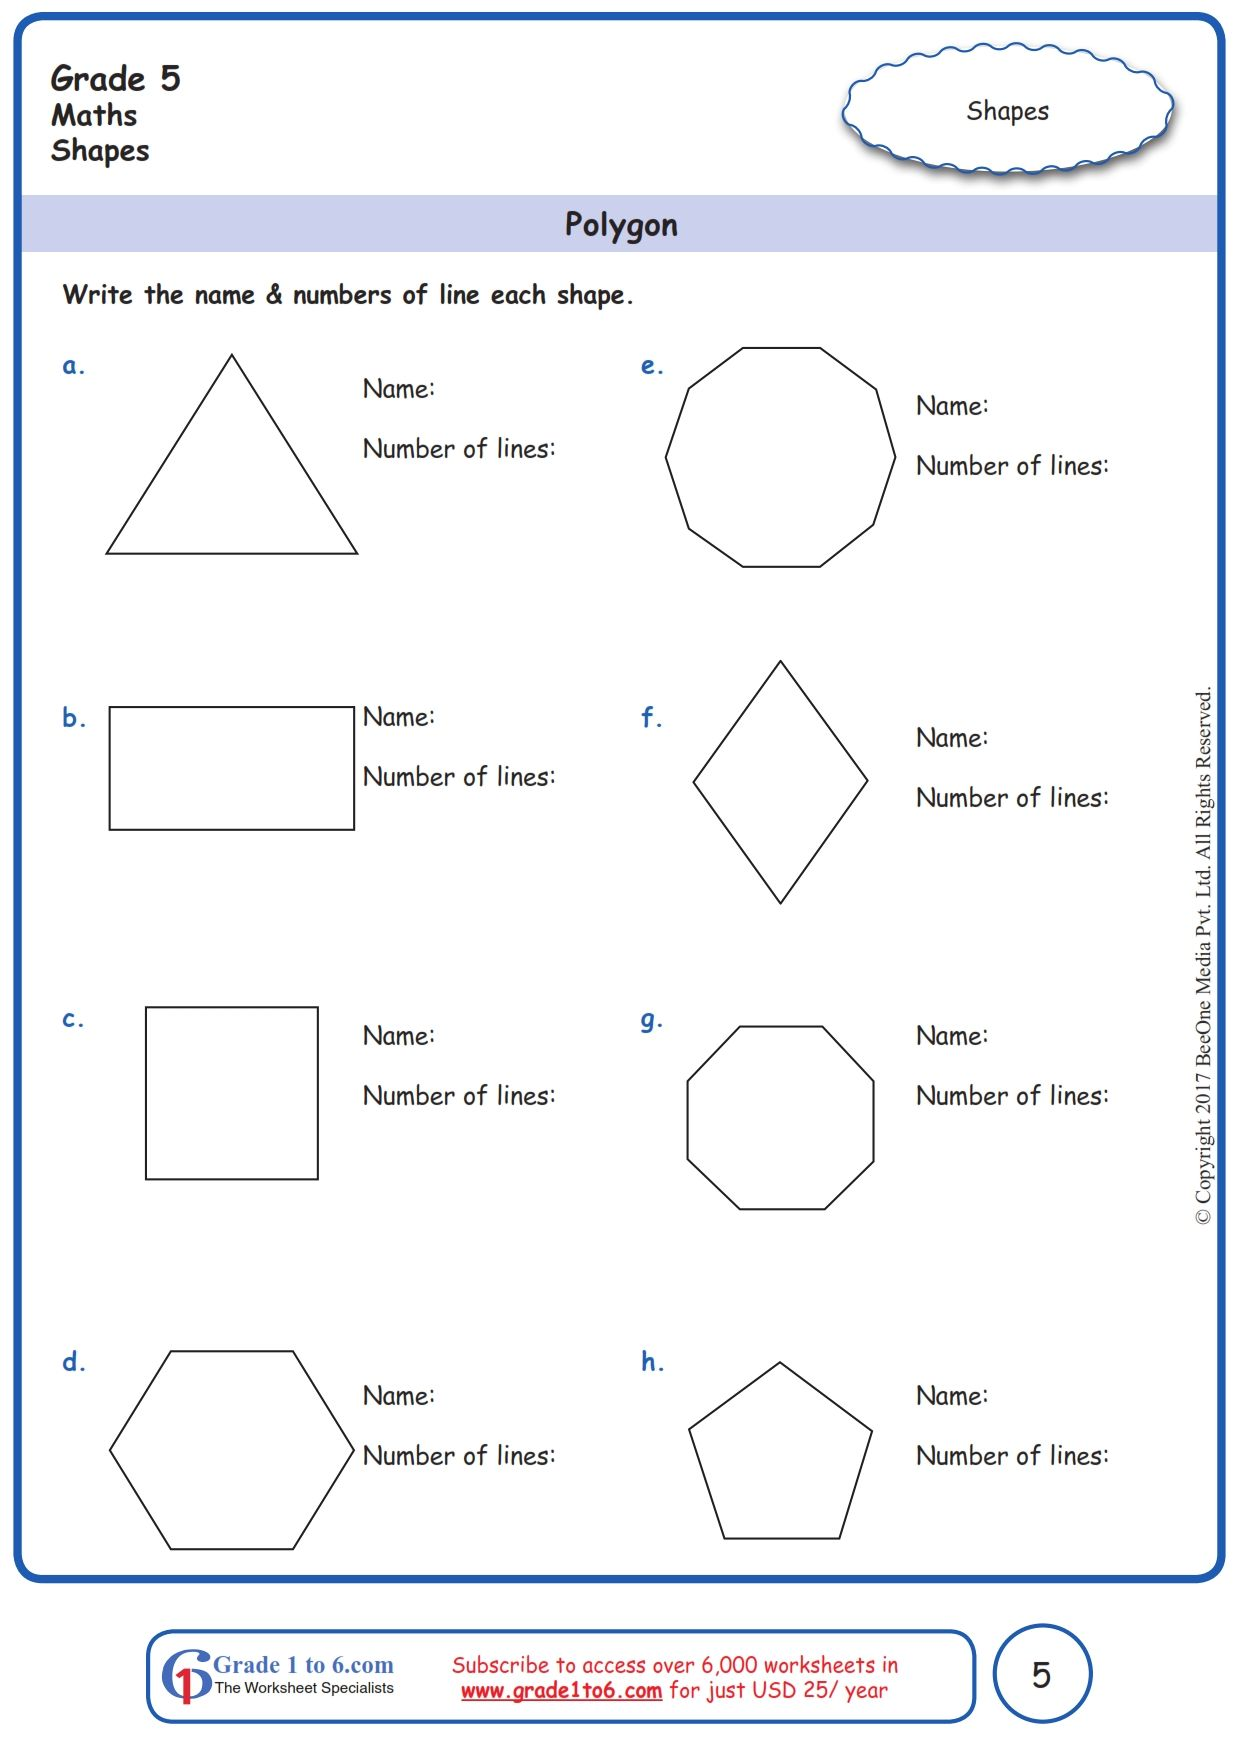 Worksheet Grade 5 Math Polygon